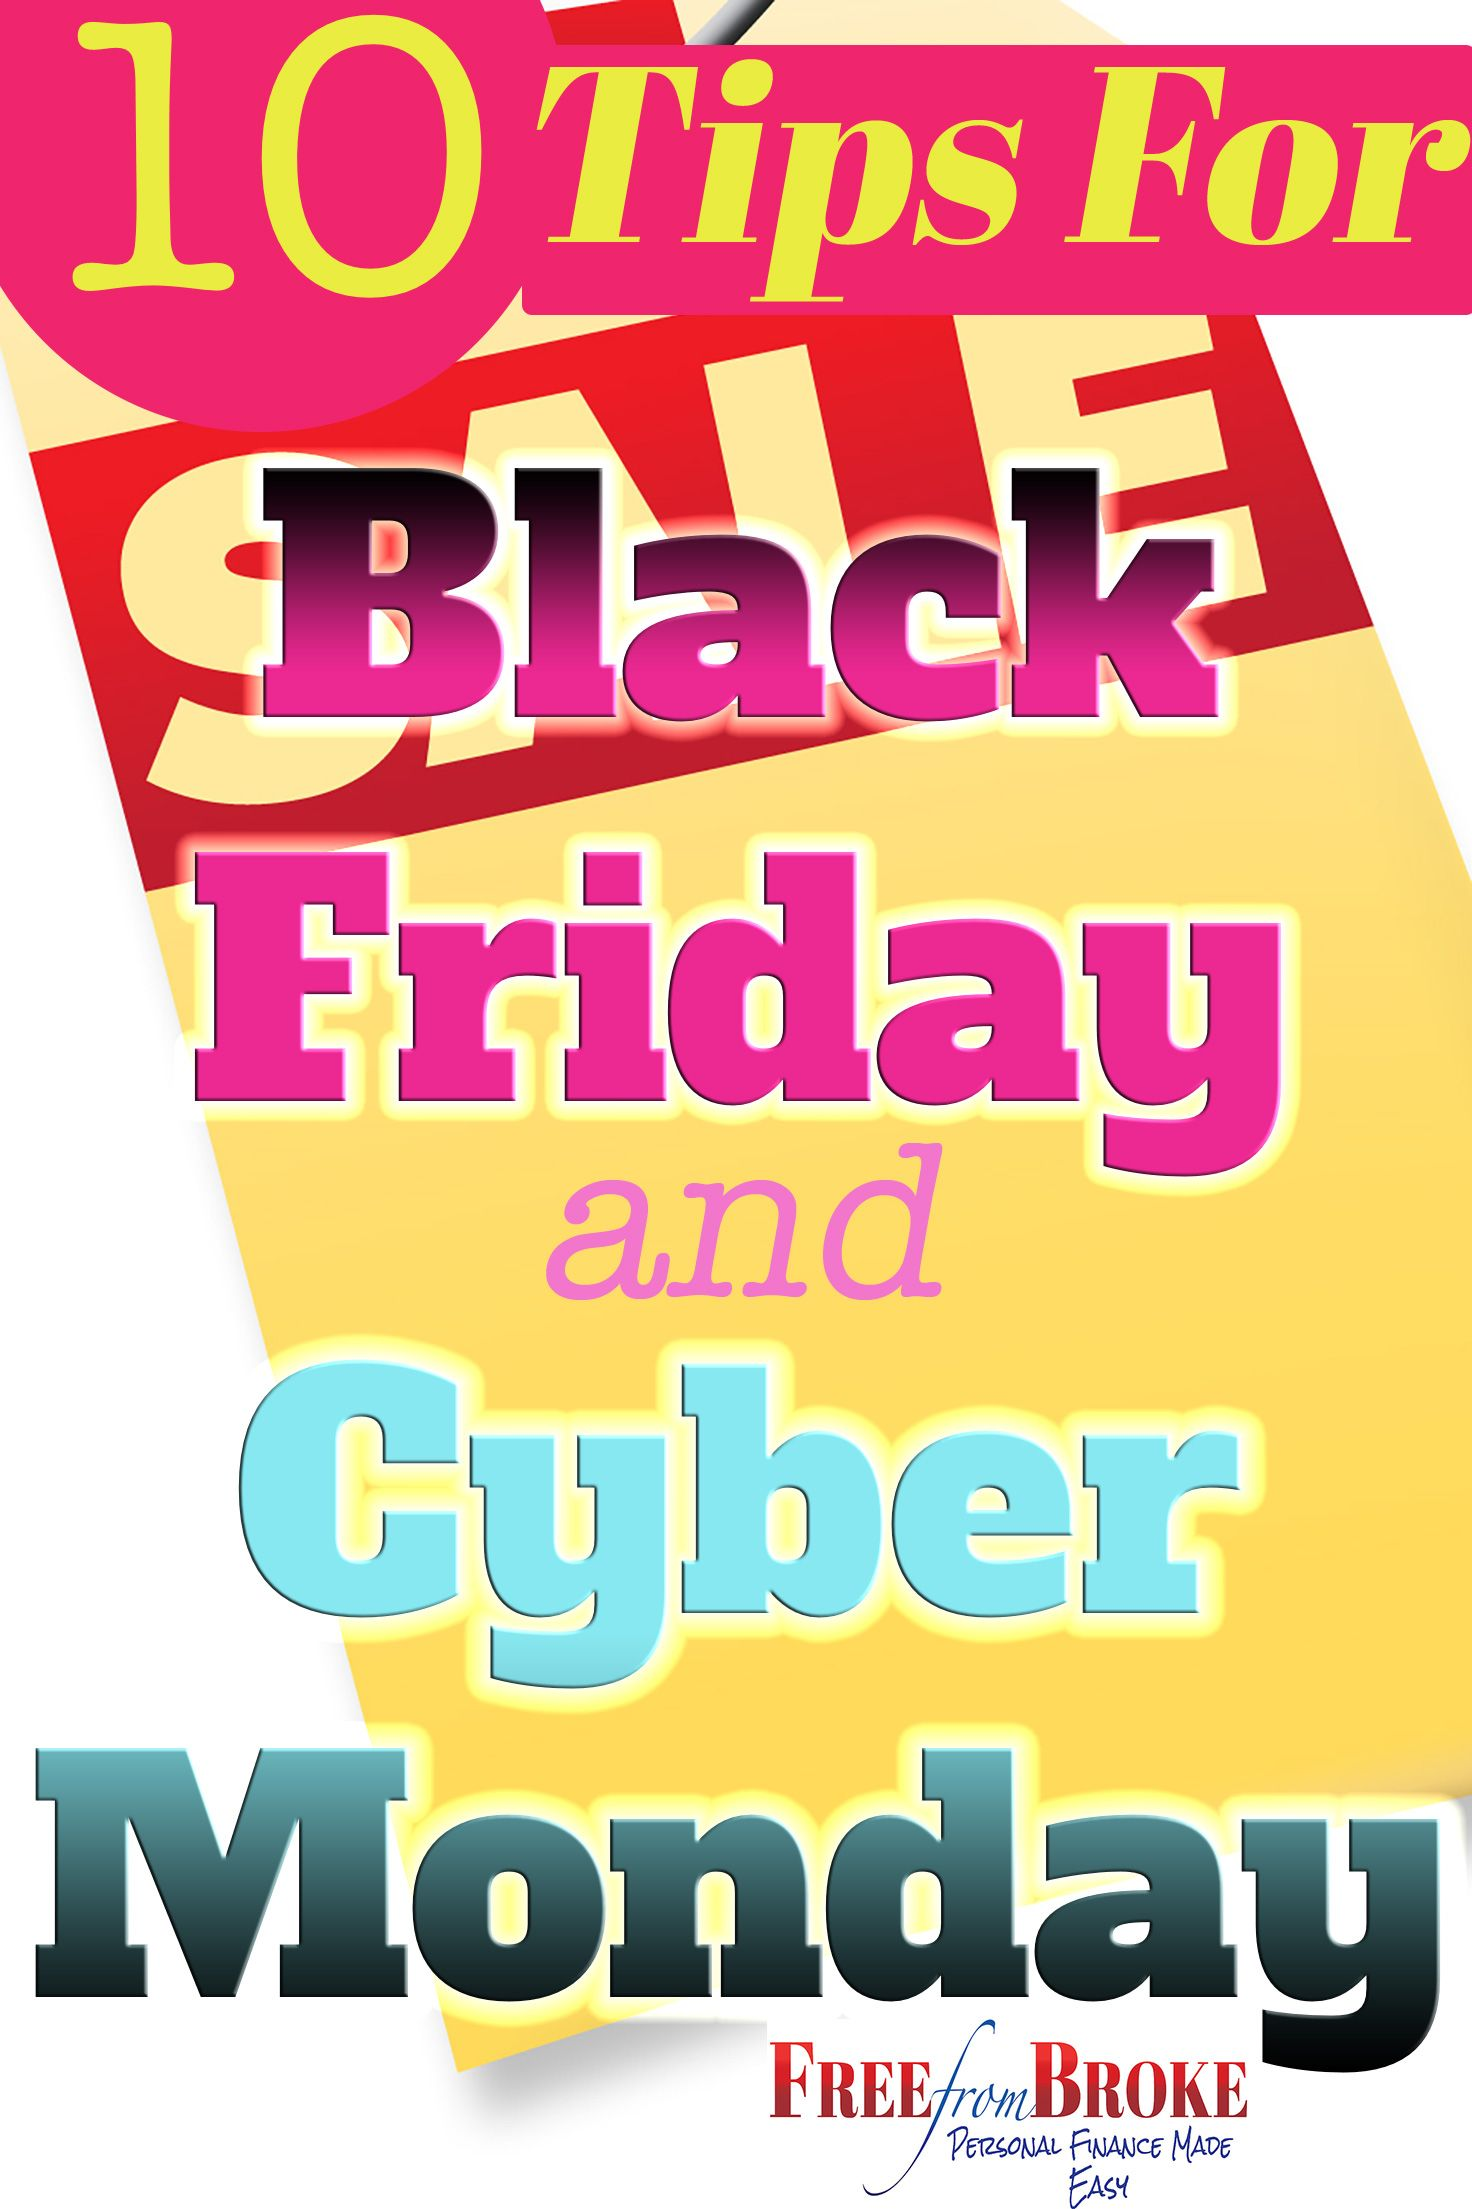 Friday Shoppingblack cyber monday promotions foto